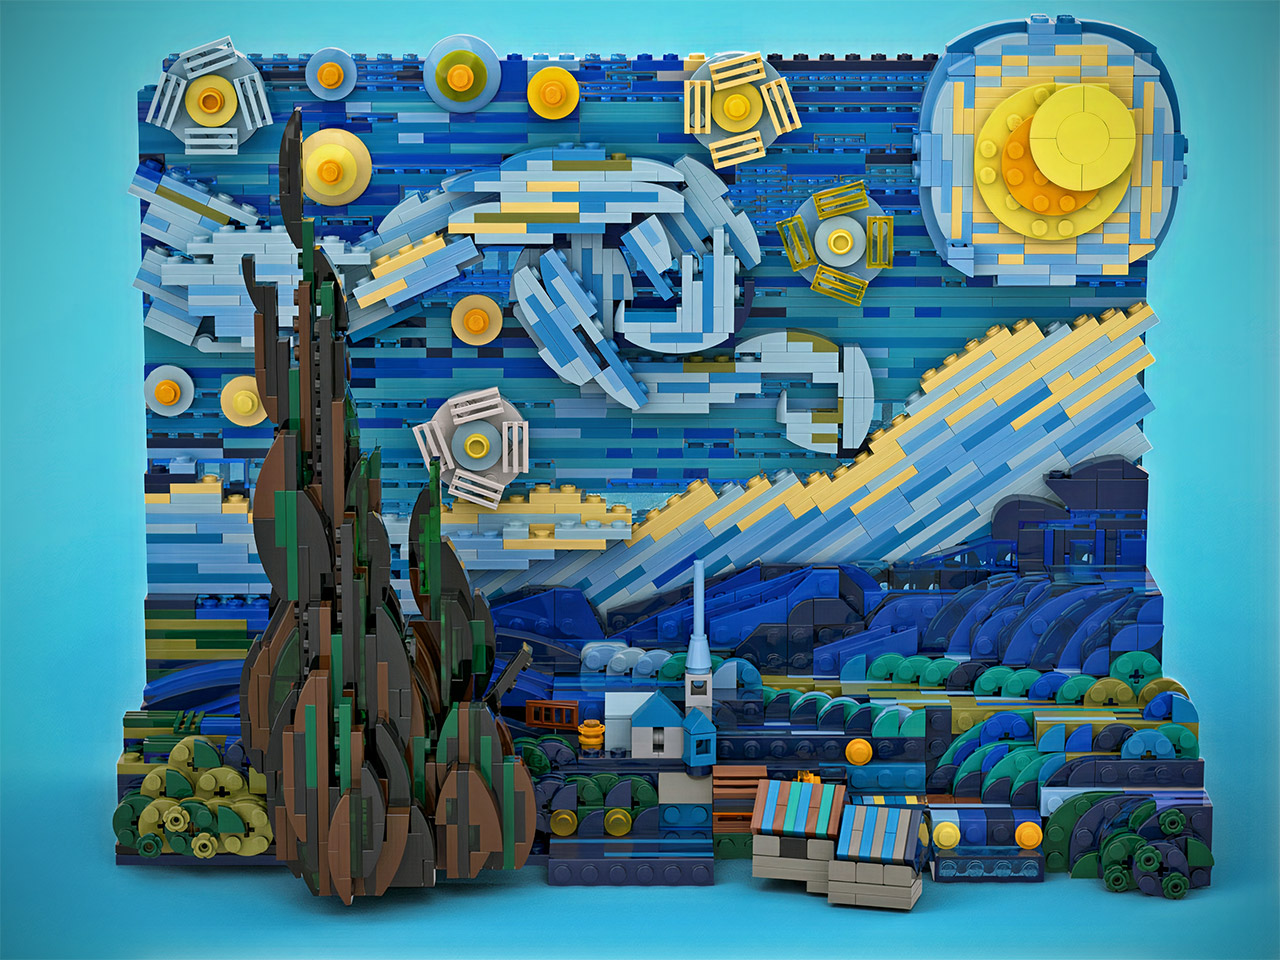 Vincent van Gogh Starry Night LEGO Ideas Set